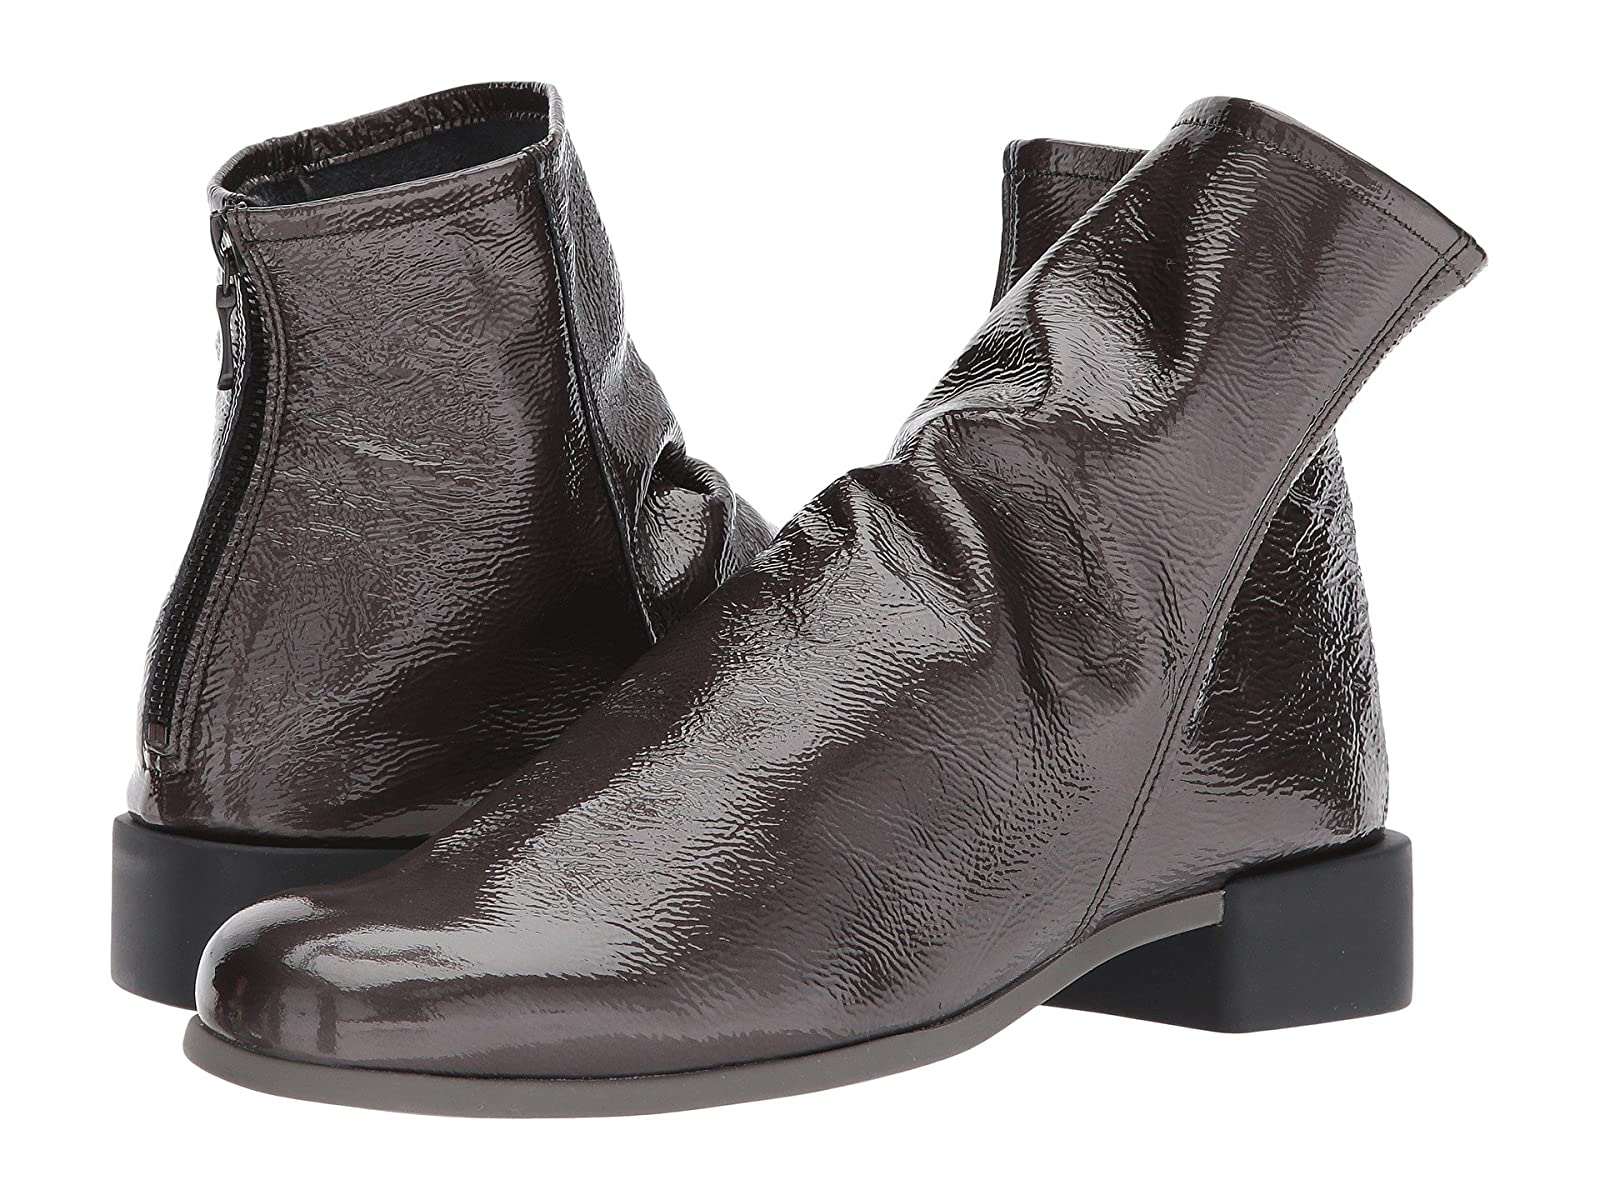 Arche TwinnyCheap and distinctive eye-catching shoes